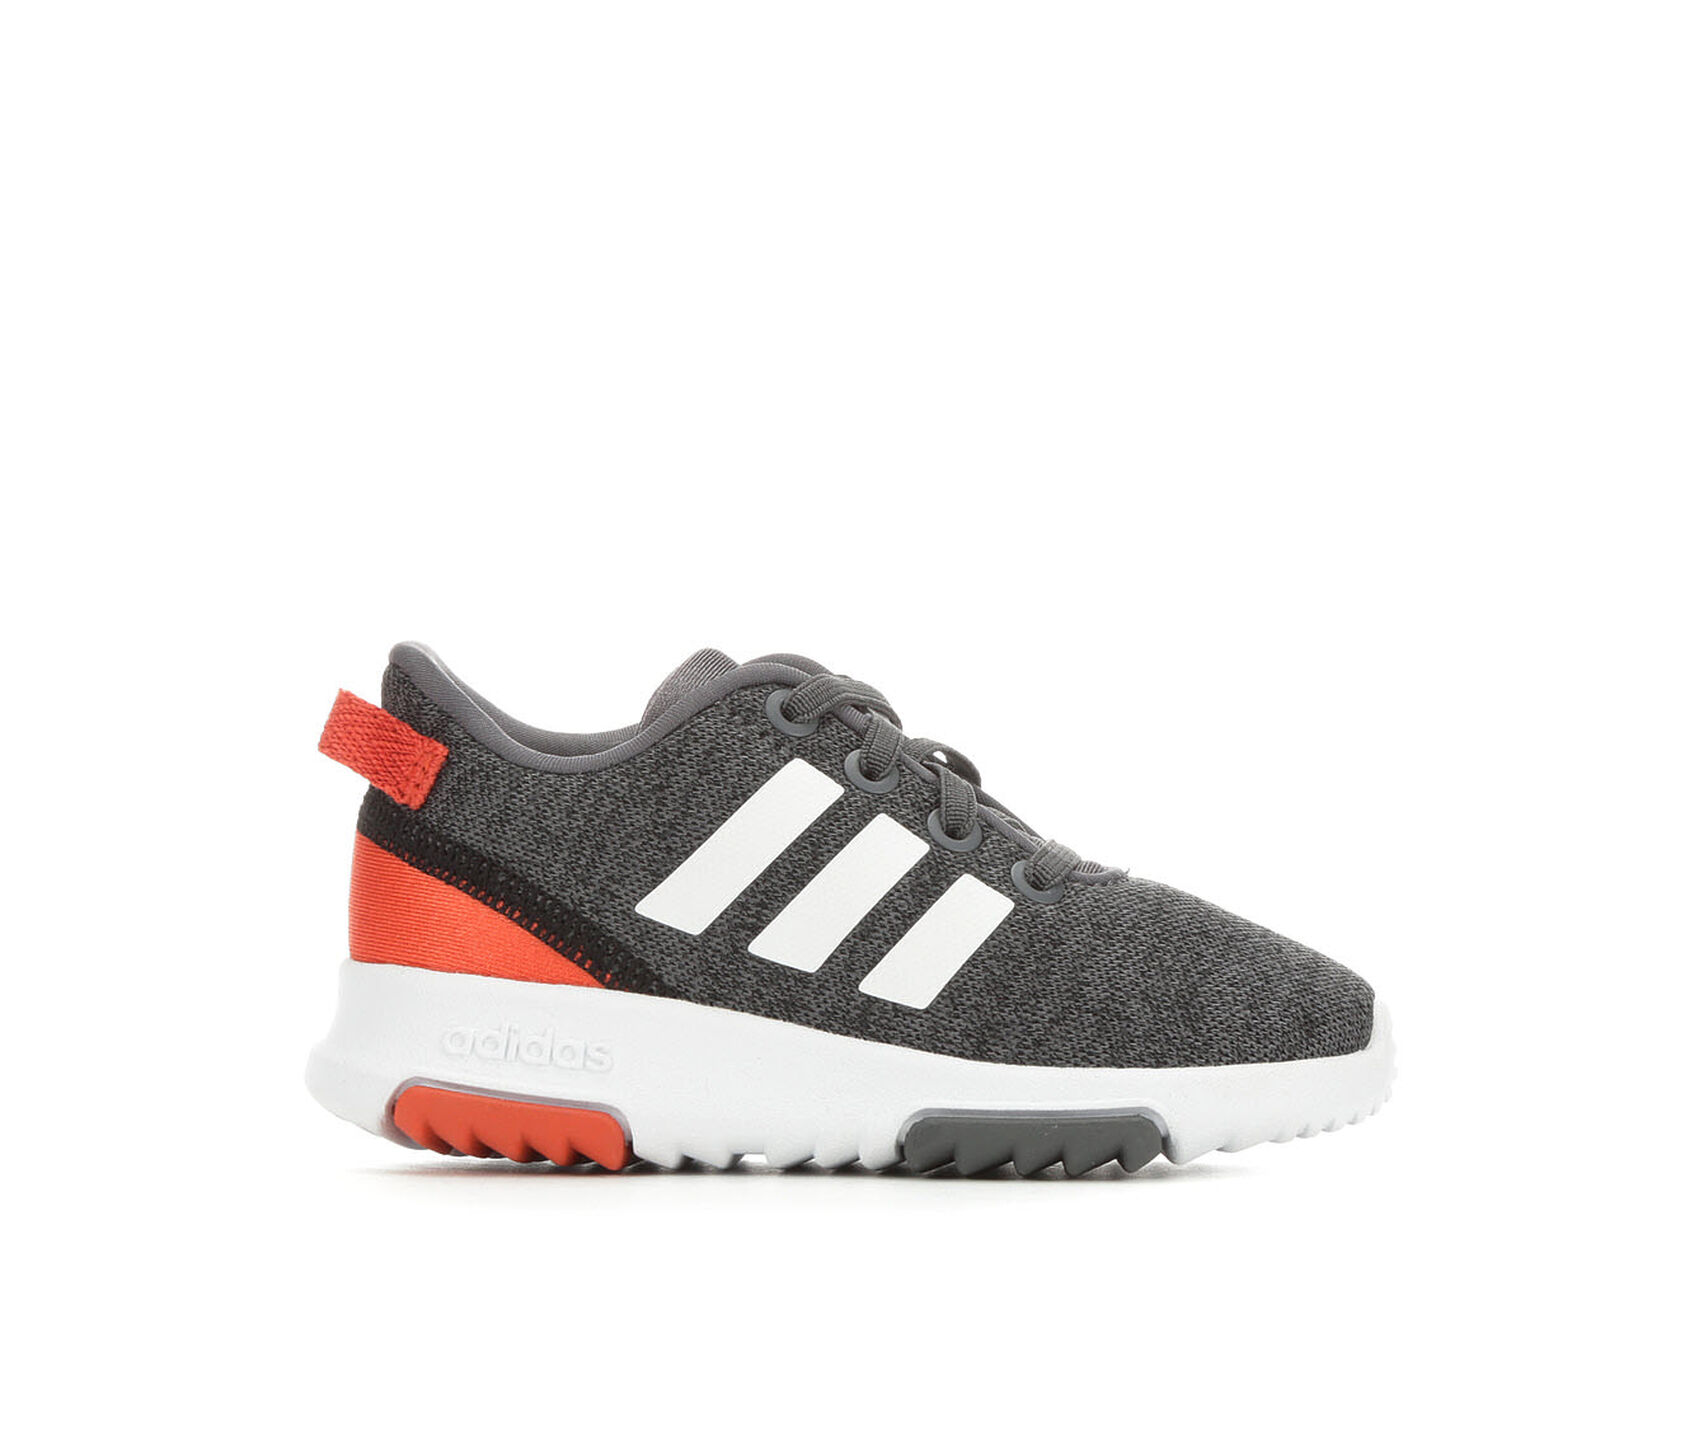 e0b1352cc41 ... Adidas Infant  amp  Toddler Racer TR Athletic Shoes. Previous